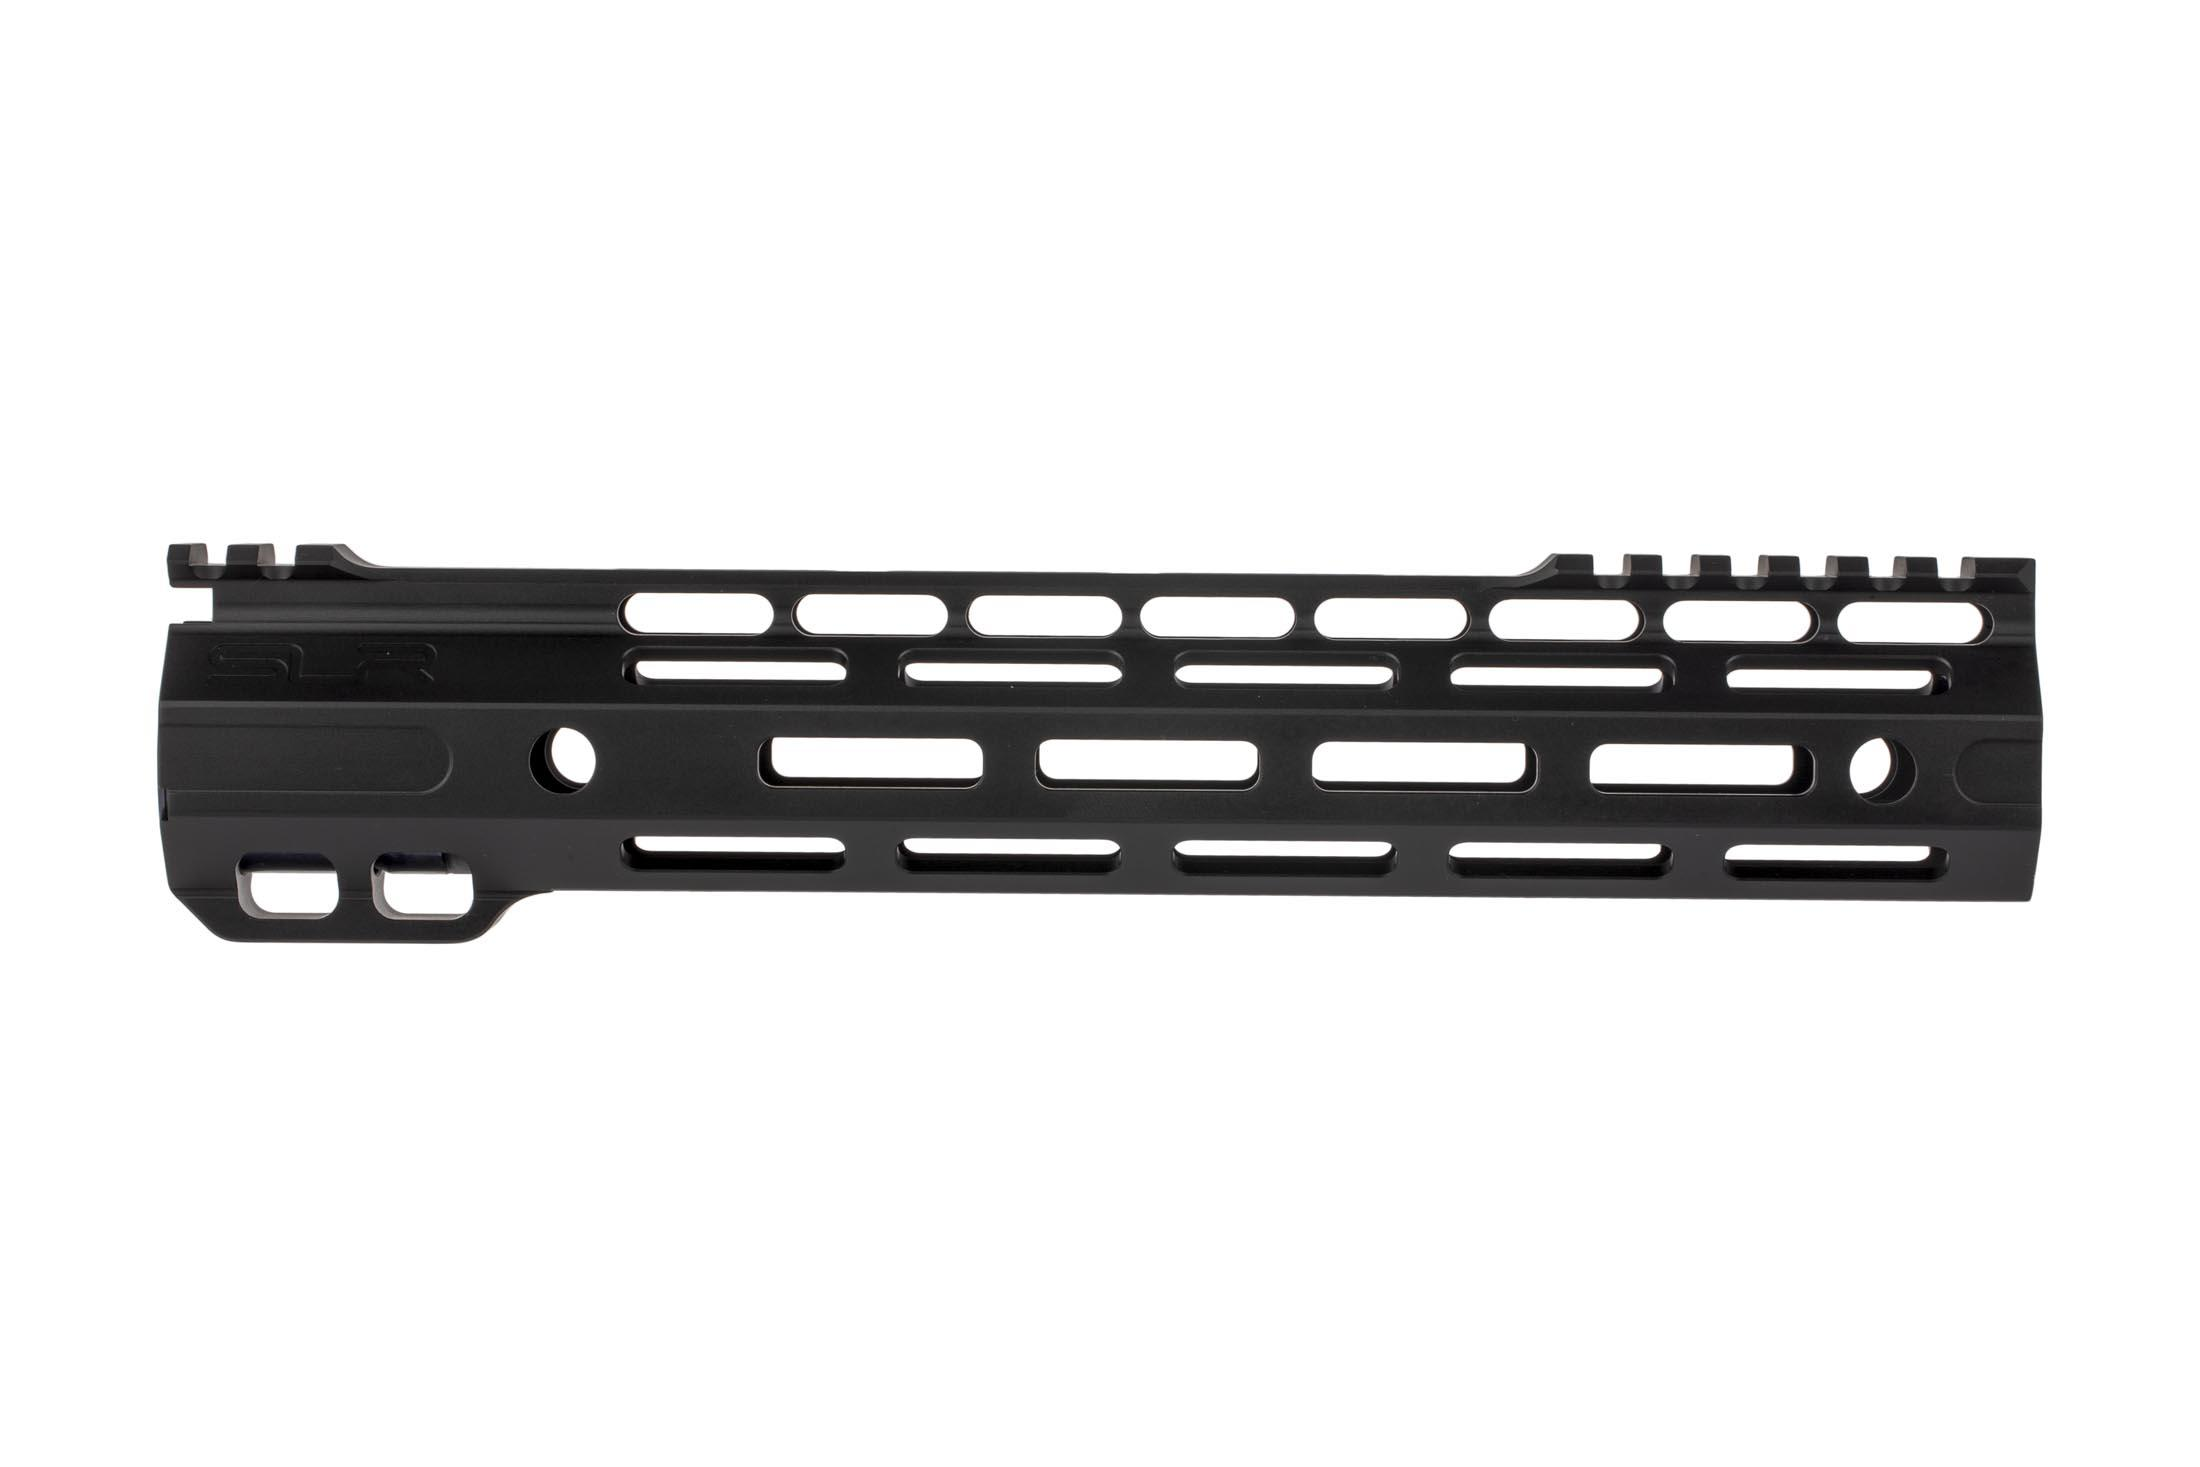 The SLR Rifleworks Ion Ultra Lite handguard is designed for building a lightweight ar15 carbine